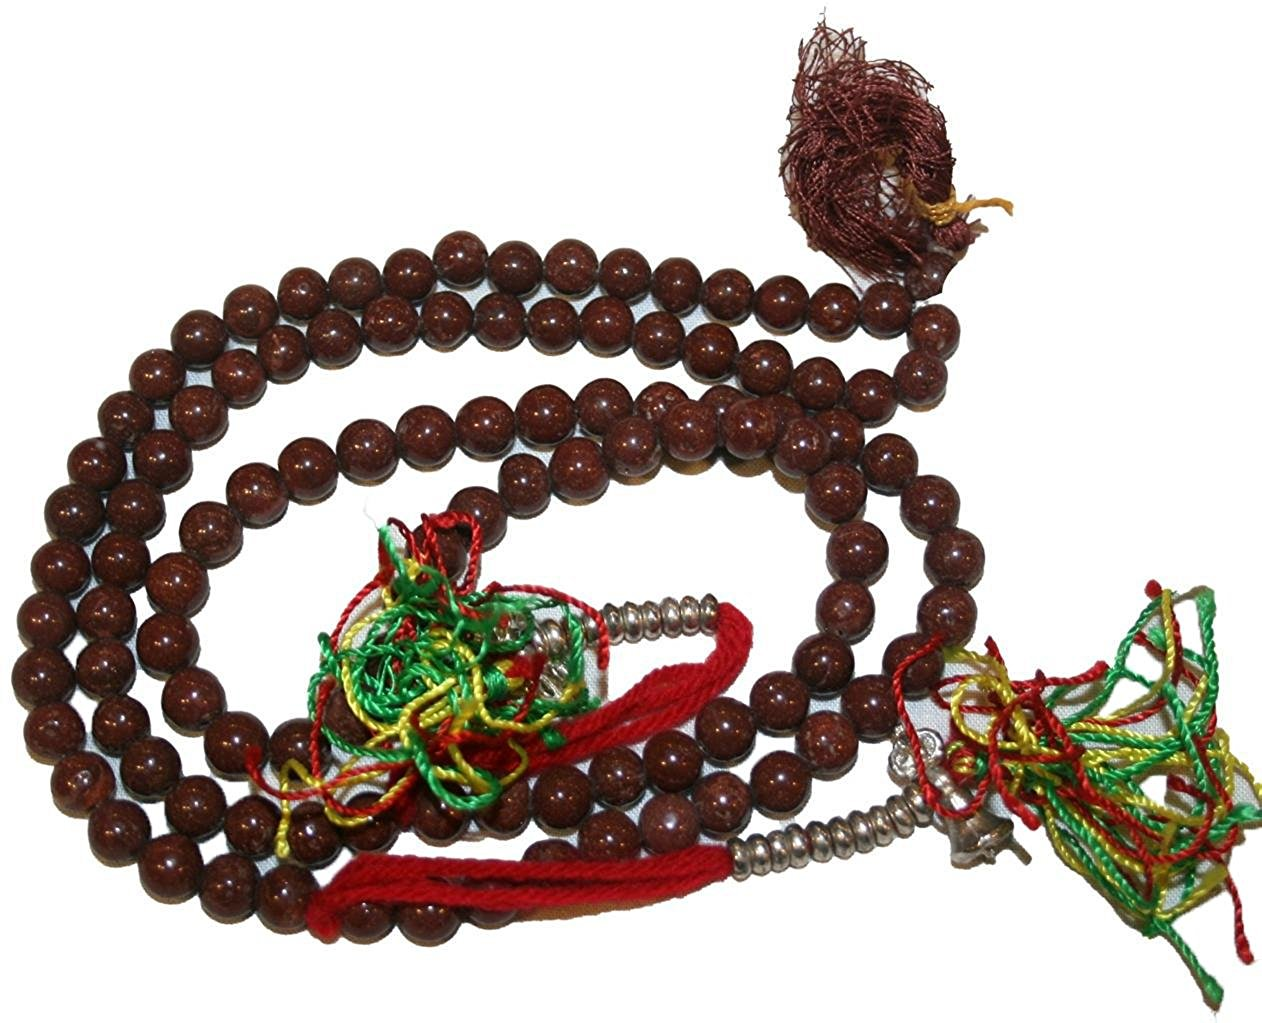 Agan Traders Original Tibetan Buddhist 108 Beads Prayer Meditation Mala - Agan Traders, BrownJade 7mm